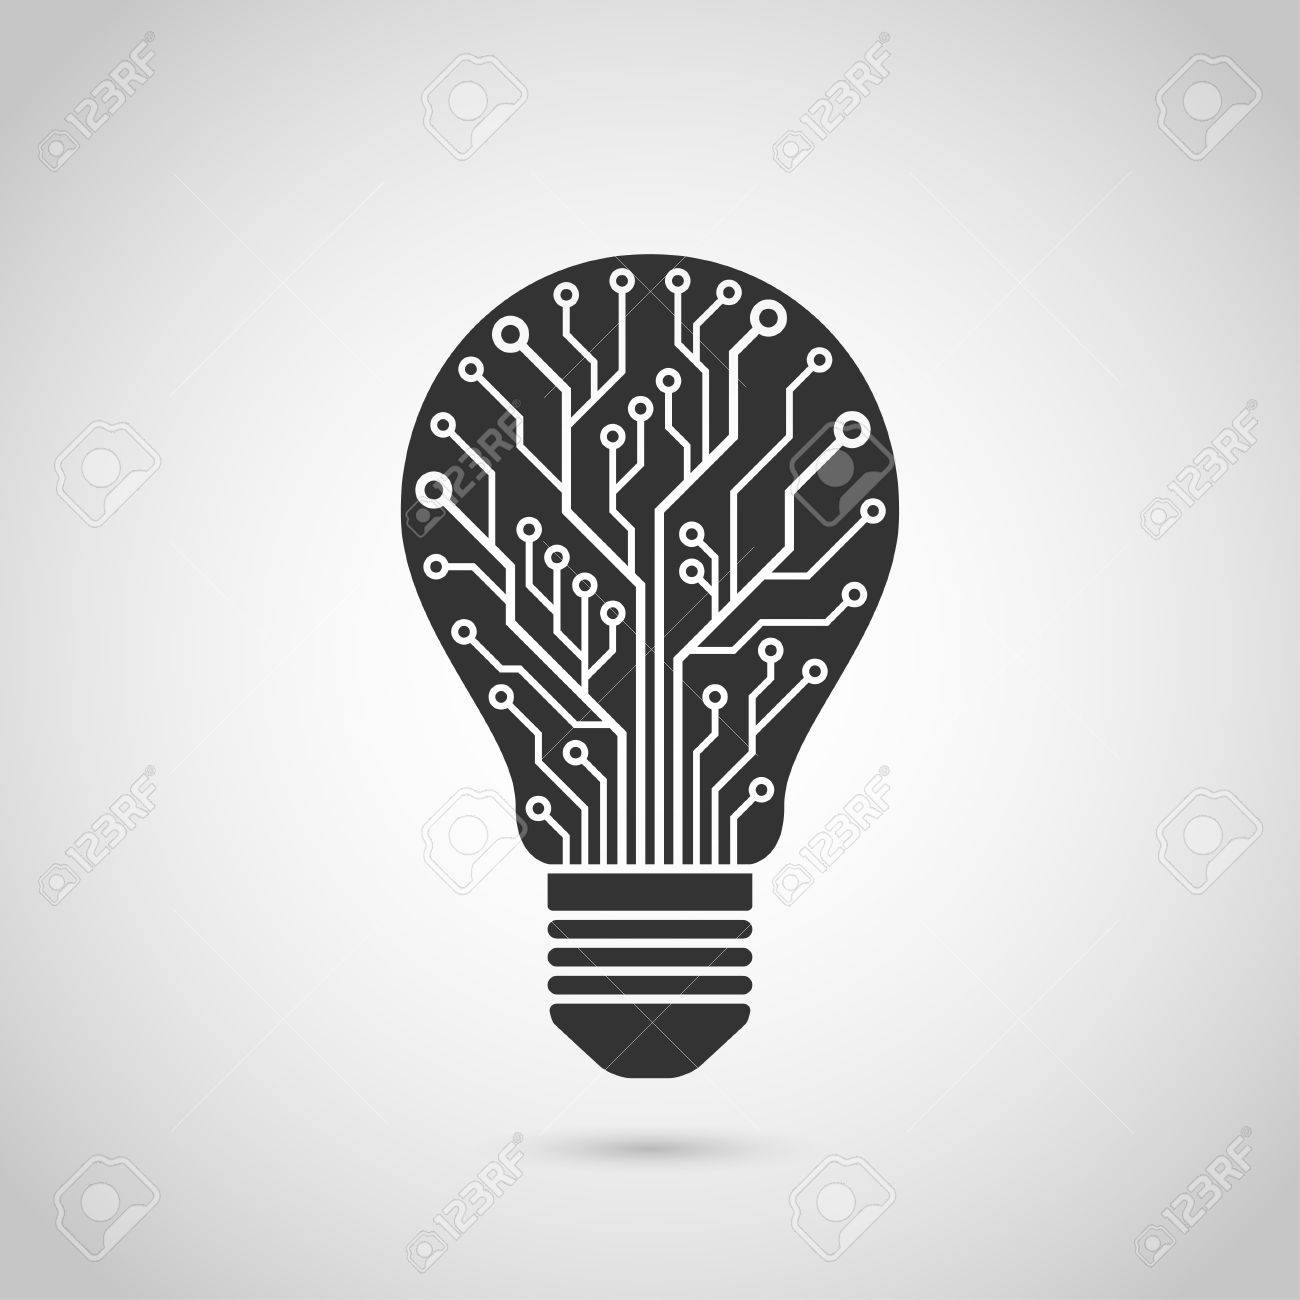 Black And White Silhouette Icon Of A Light Bulb In Form Of Printed